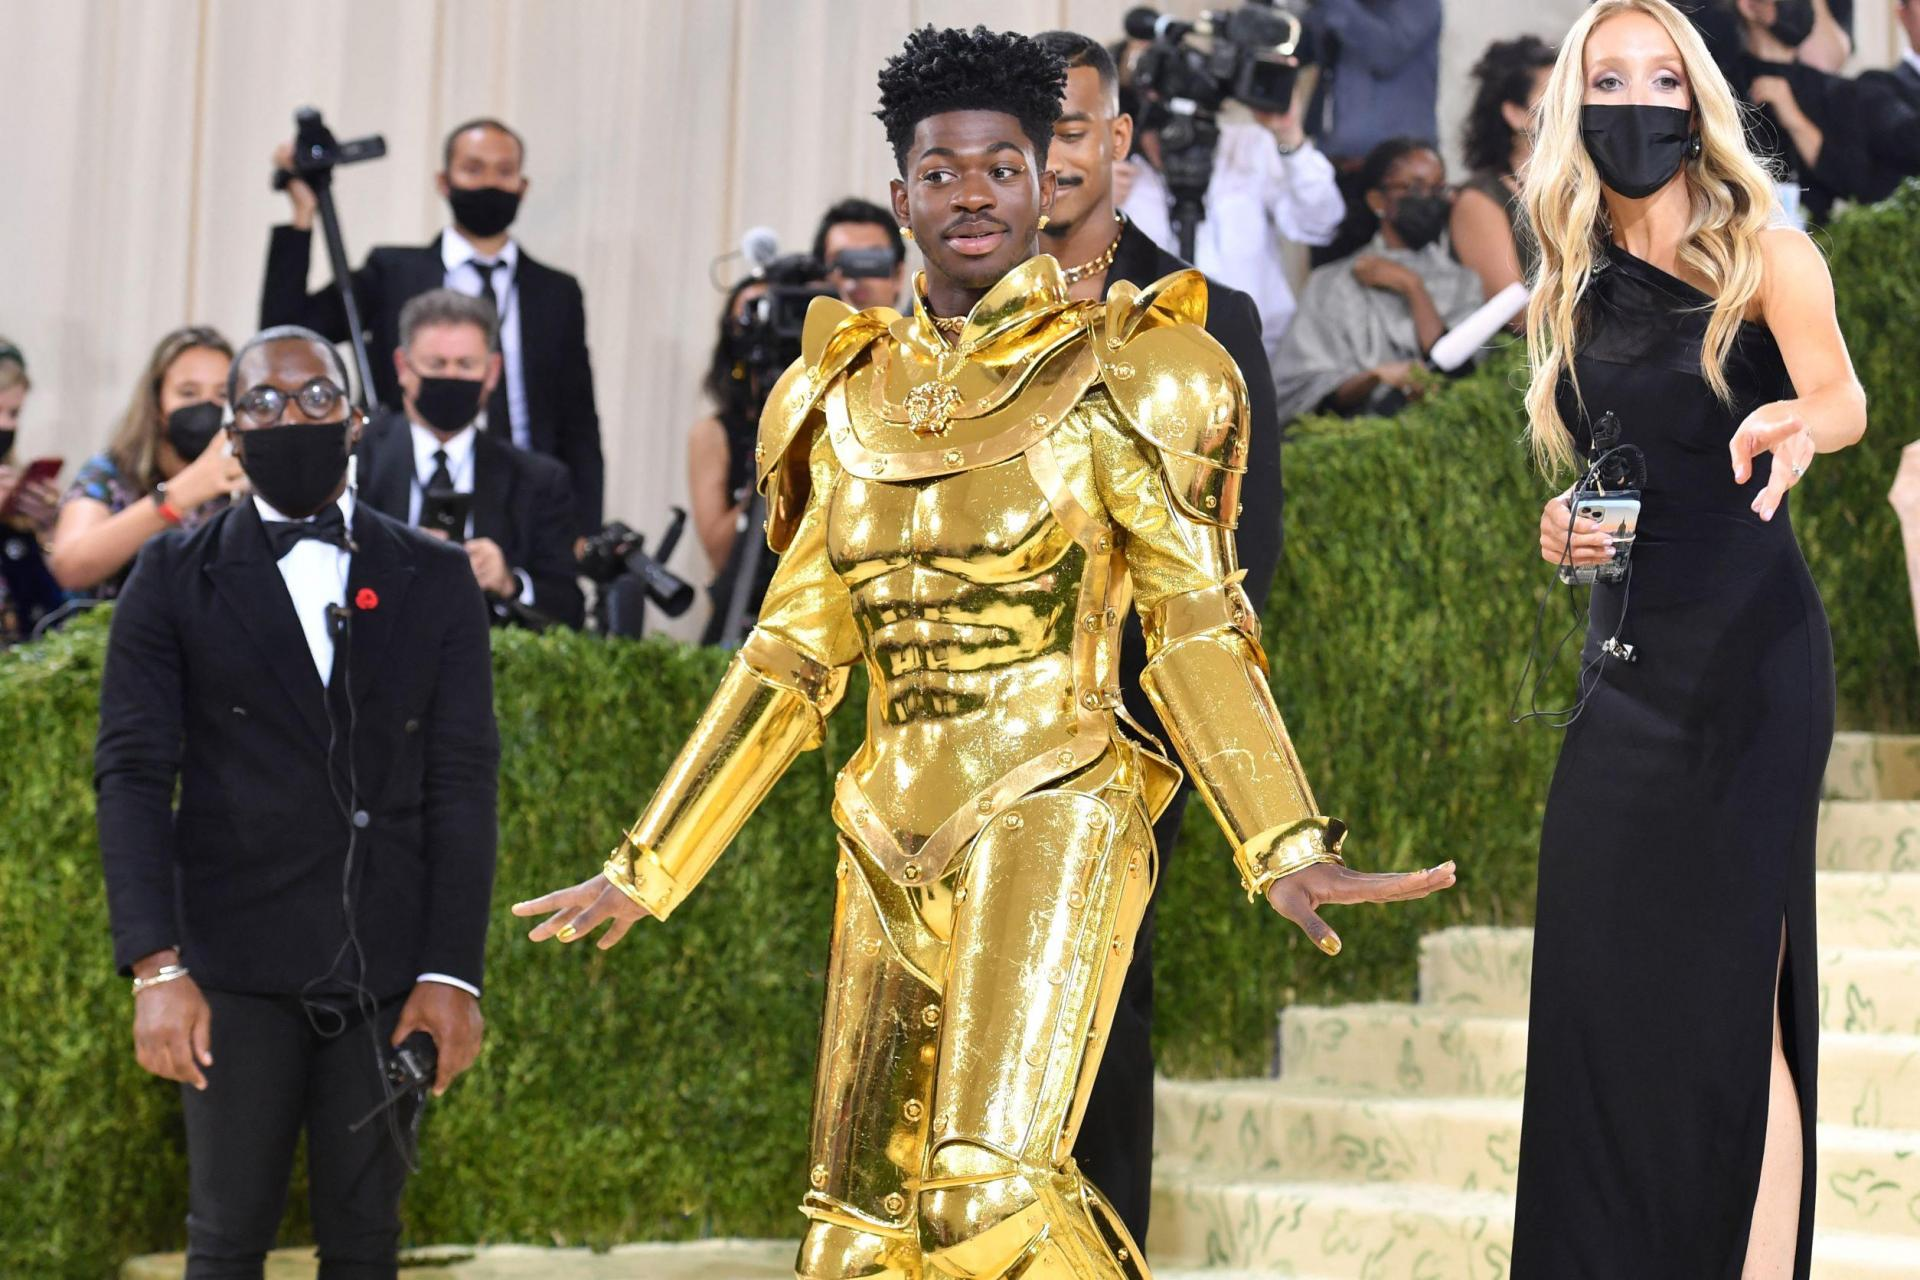 US rapper Lil Nas X arrives for the 2021 Met Gala at the Metropolitan Museum of Art on September 13, 2021, in New York. Photo: Angela Weiss/AFP